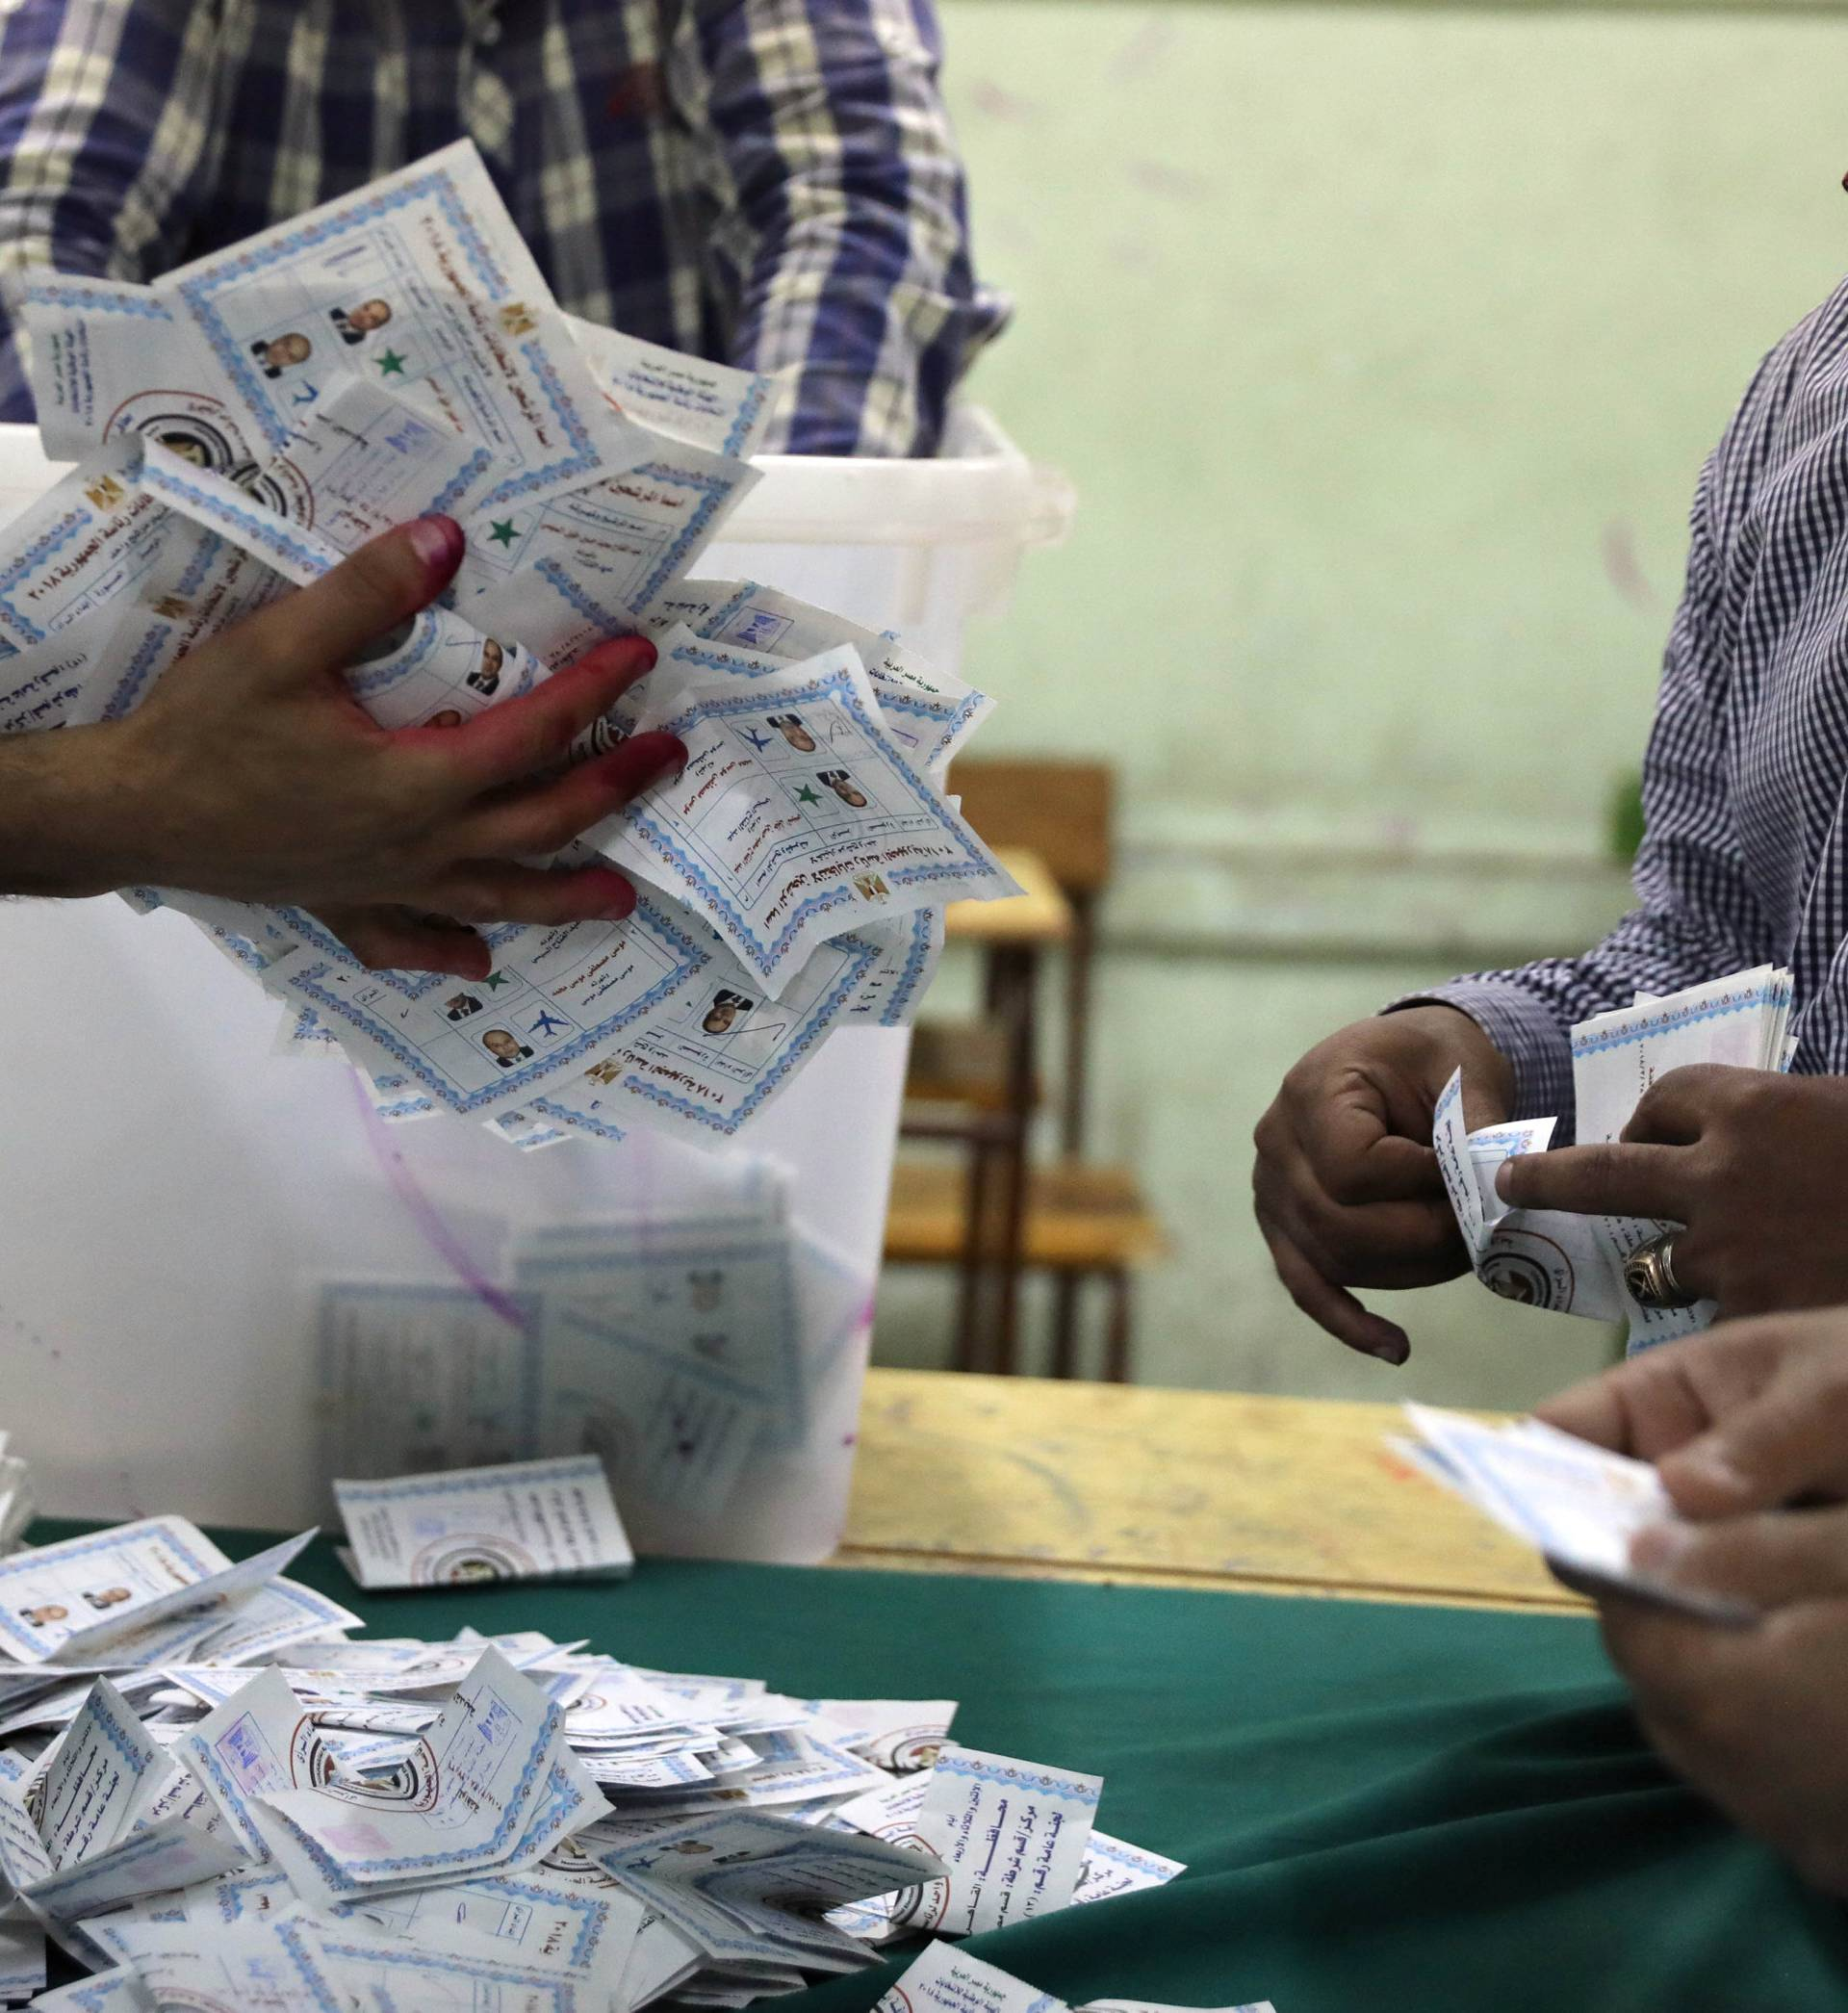 Electoral workers sort ballots to count votes after polls closed during the presidential election in Cairo